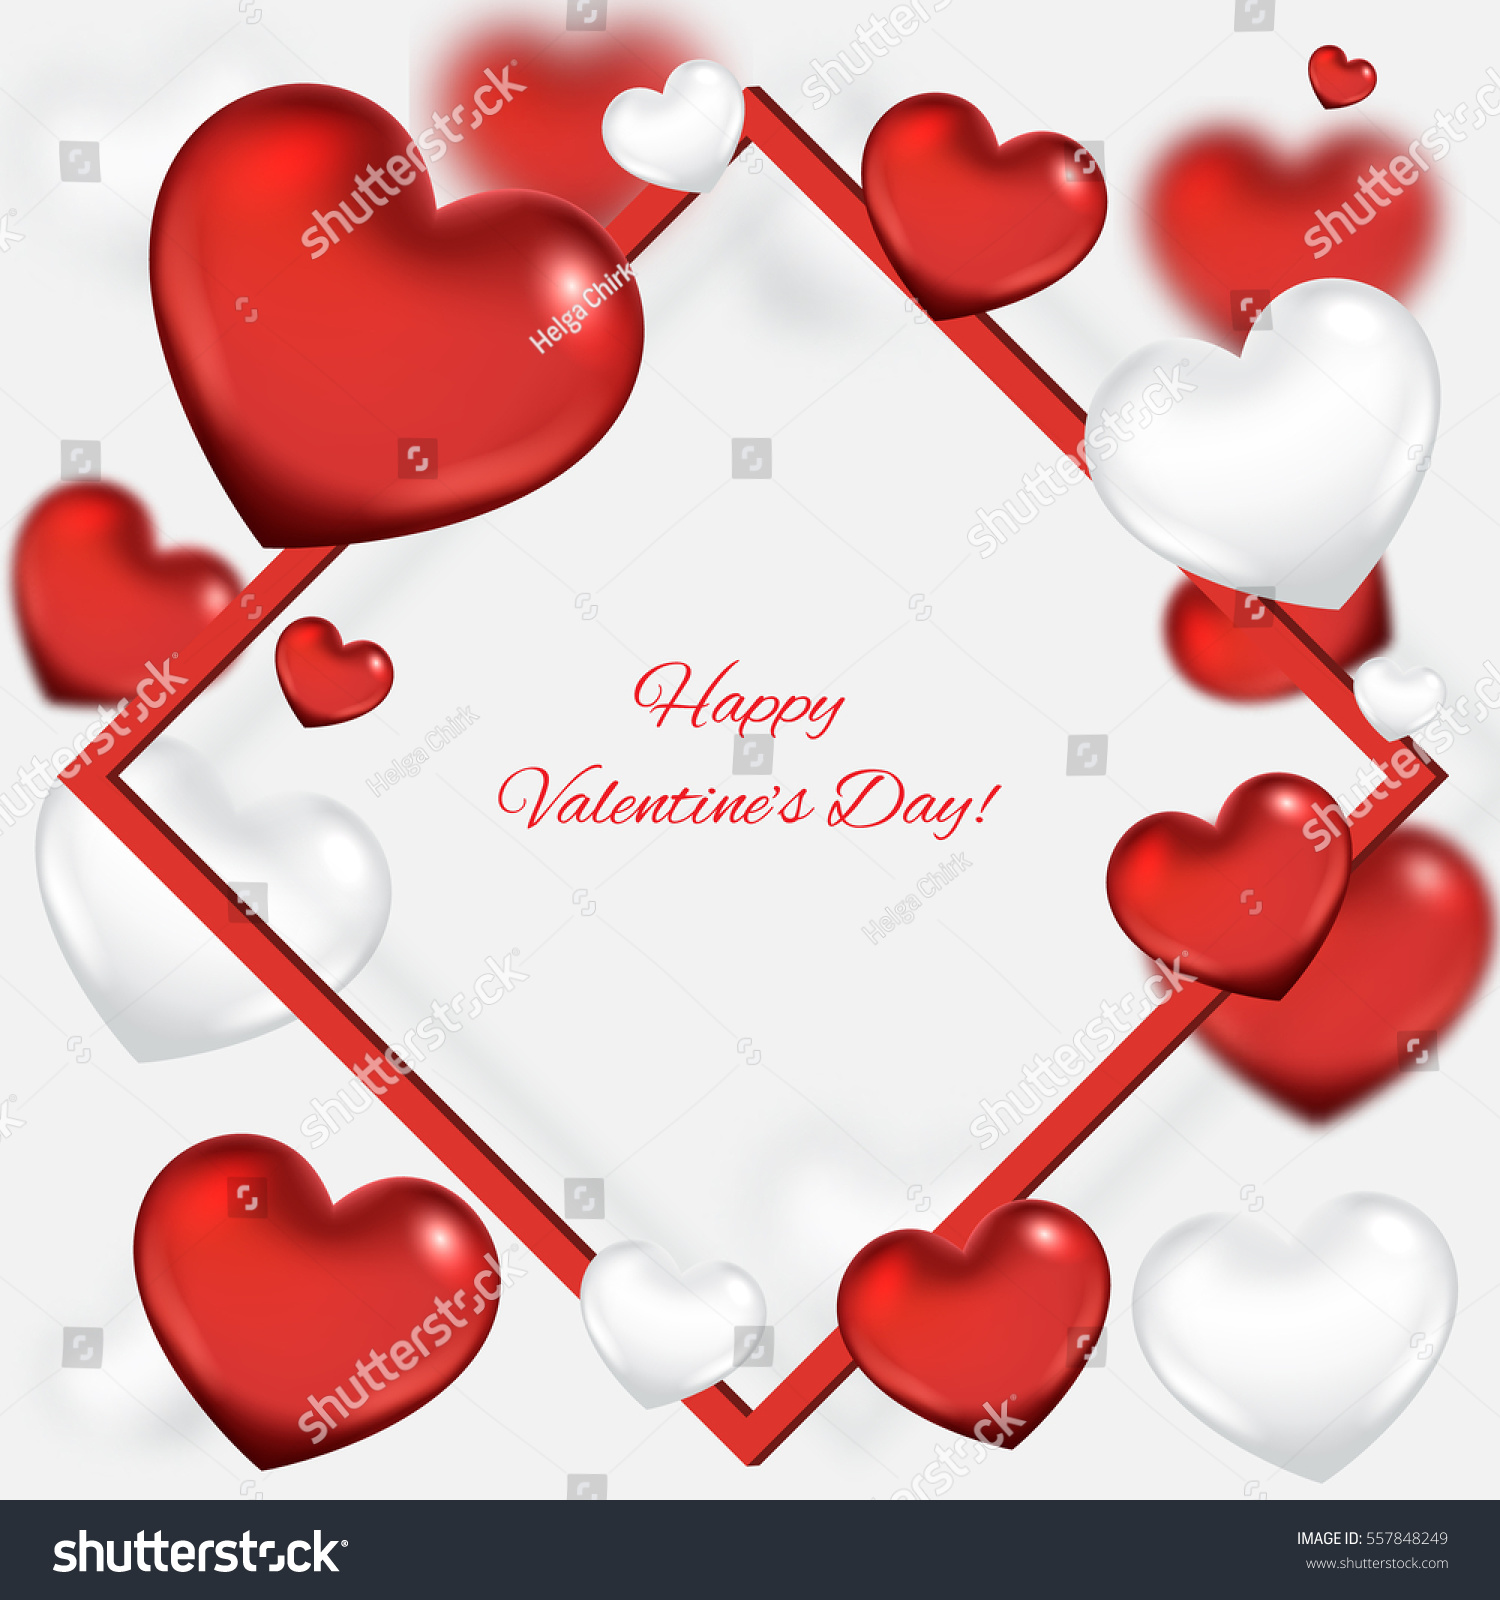 Valentines Day Background Frame Stock Vector 557848249 - Shutterstock